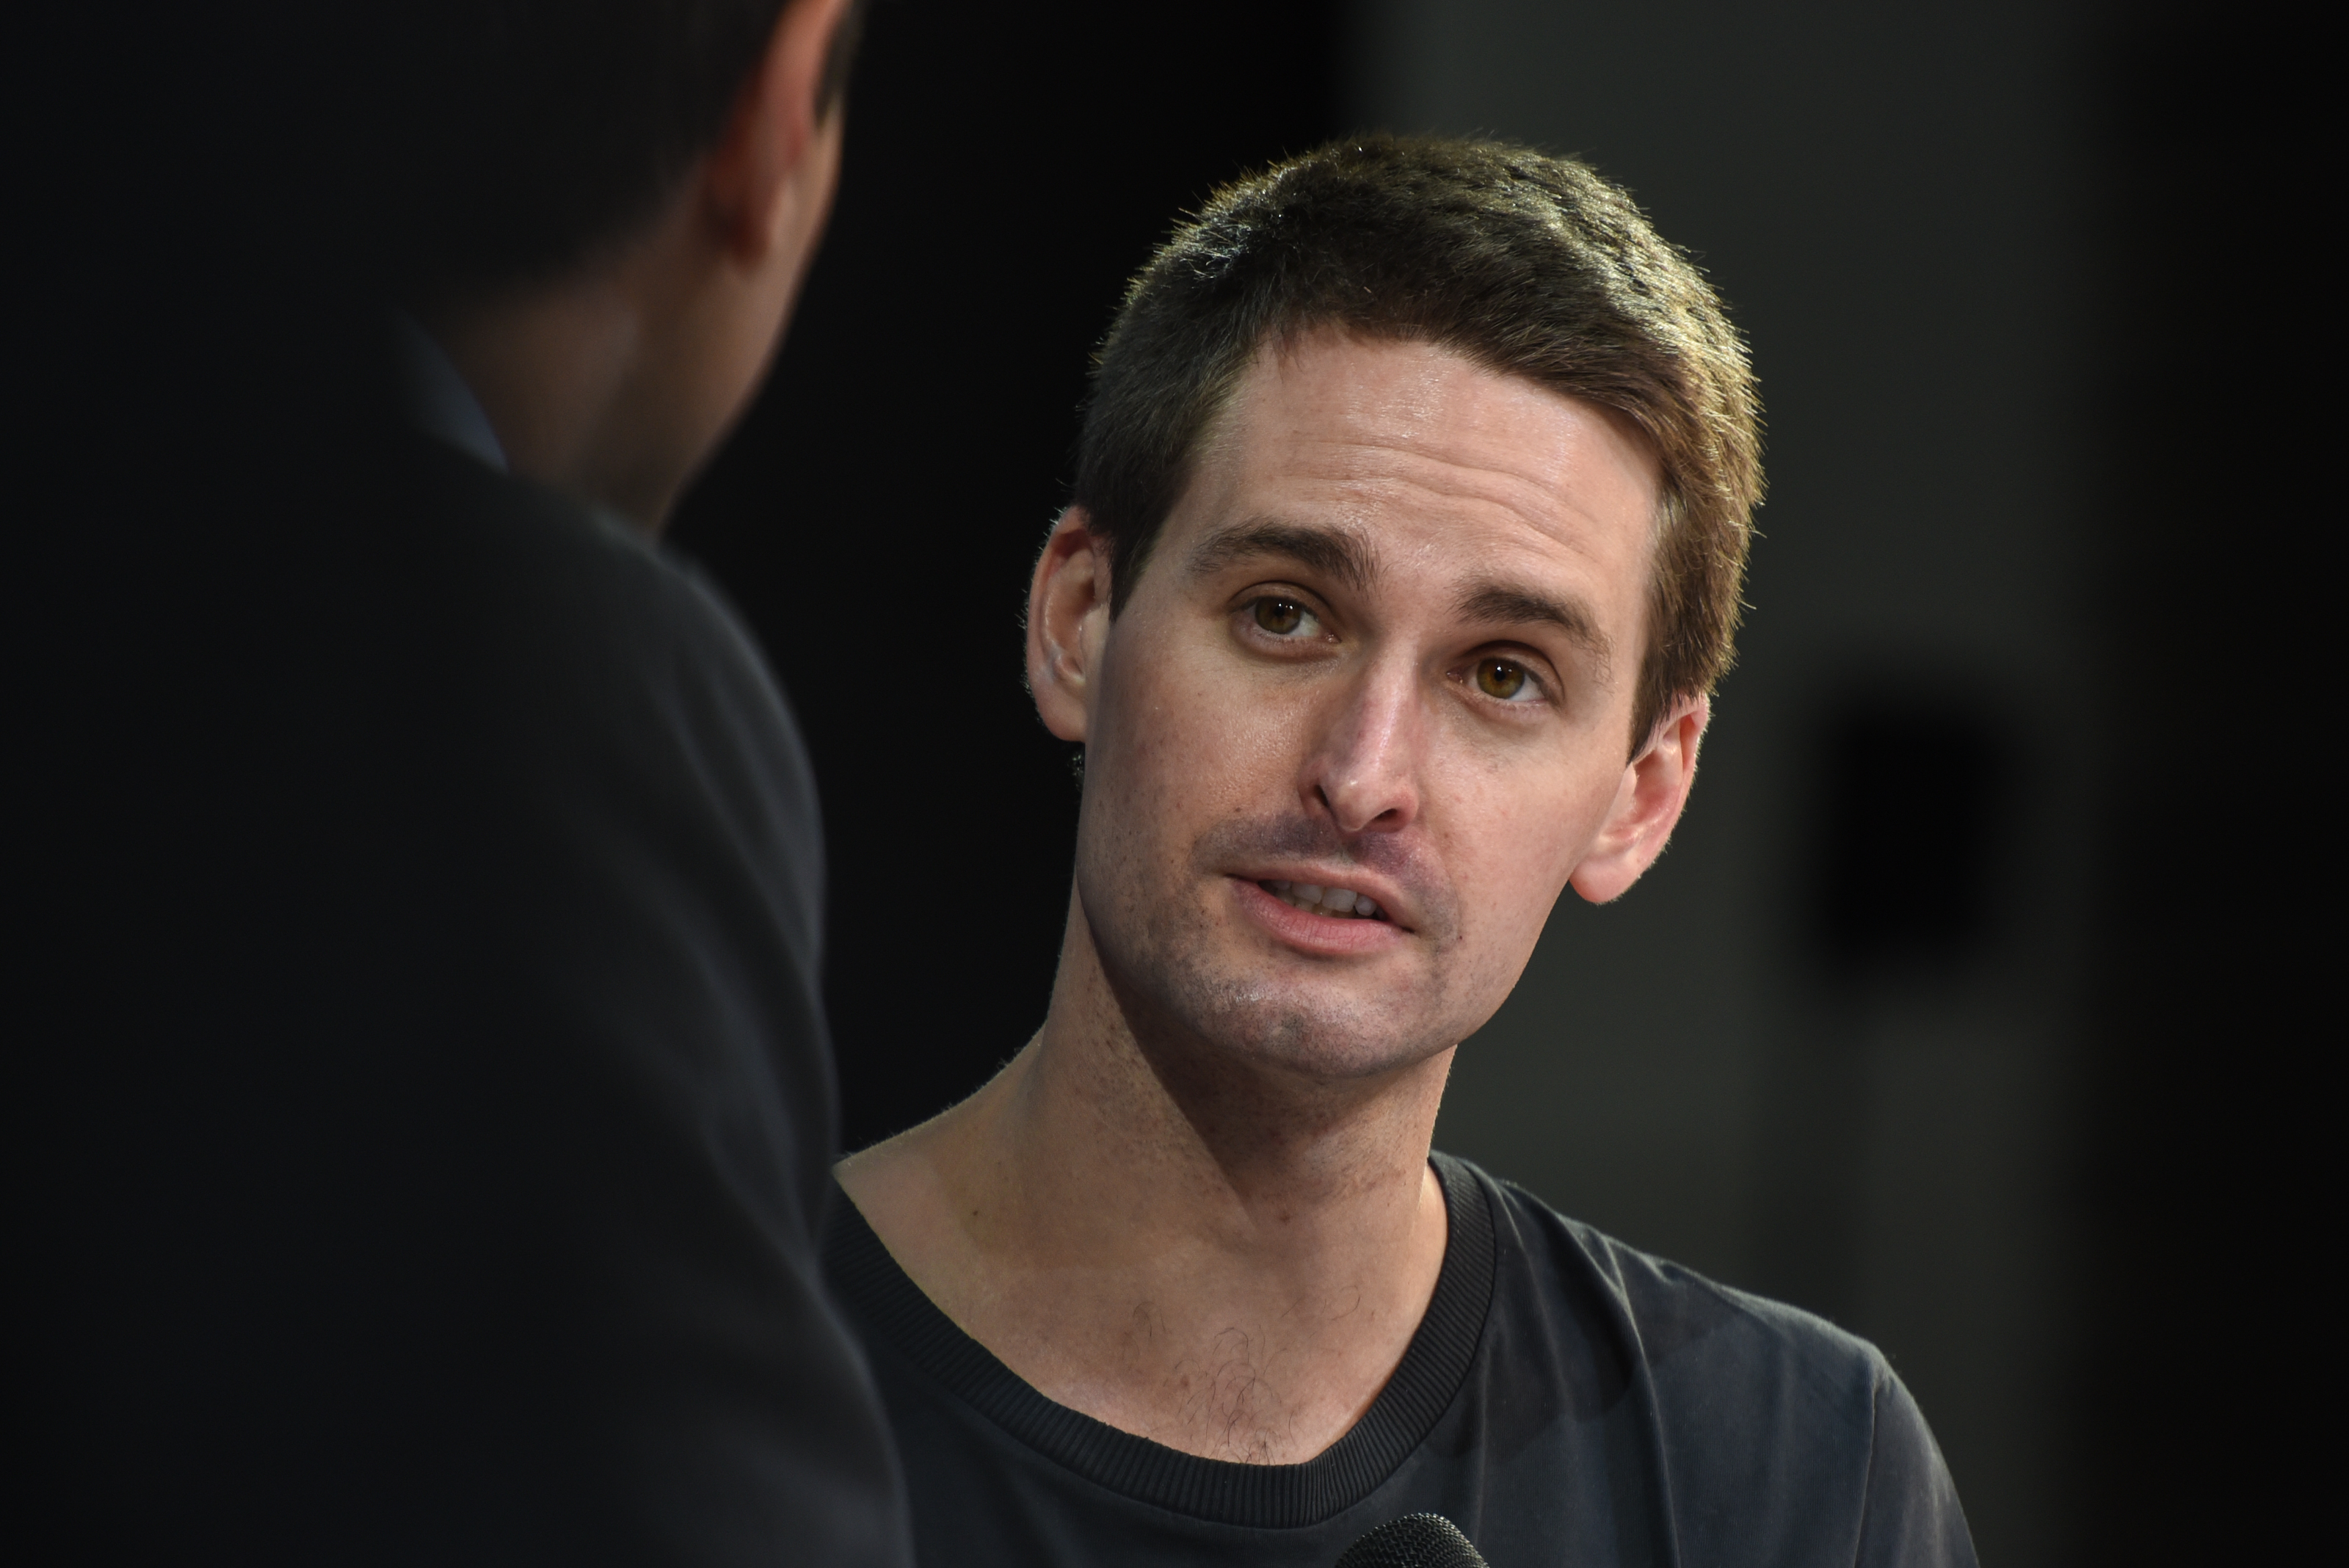 Evan Spiegel speaks onstage in 2018.